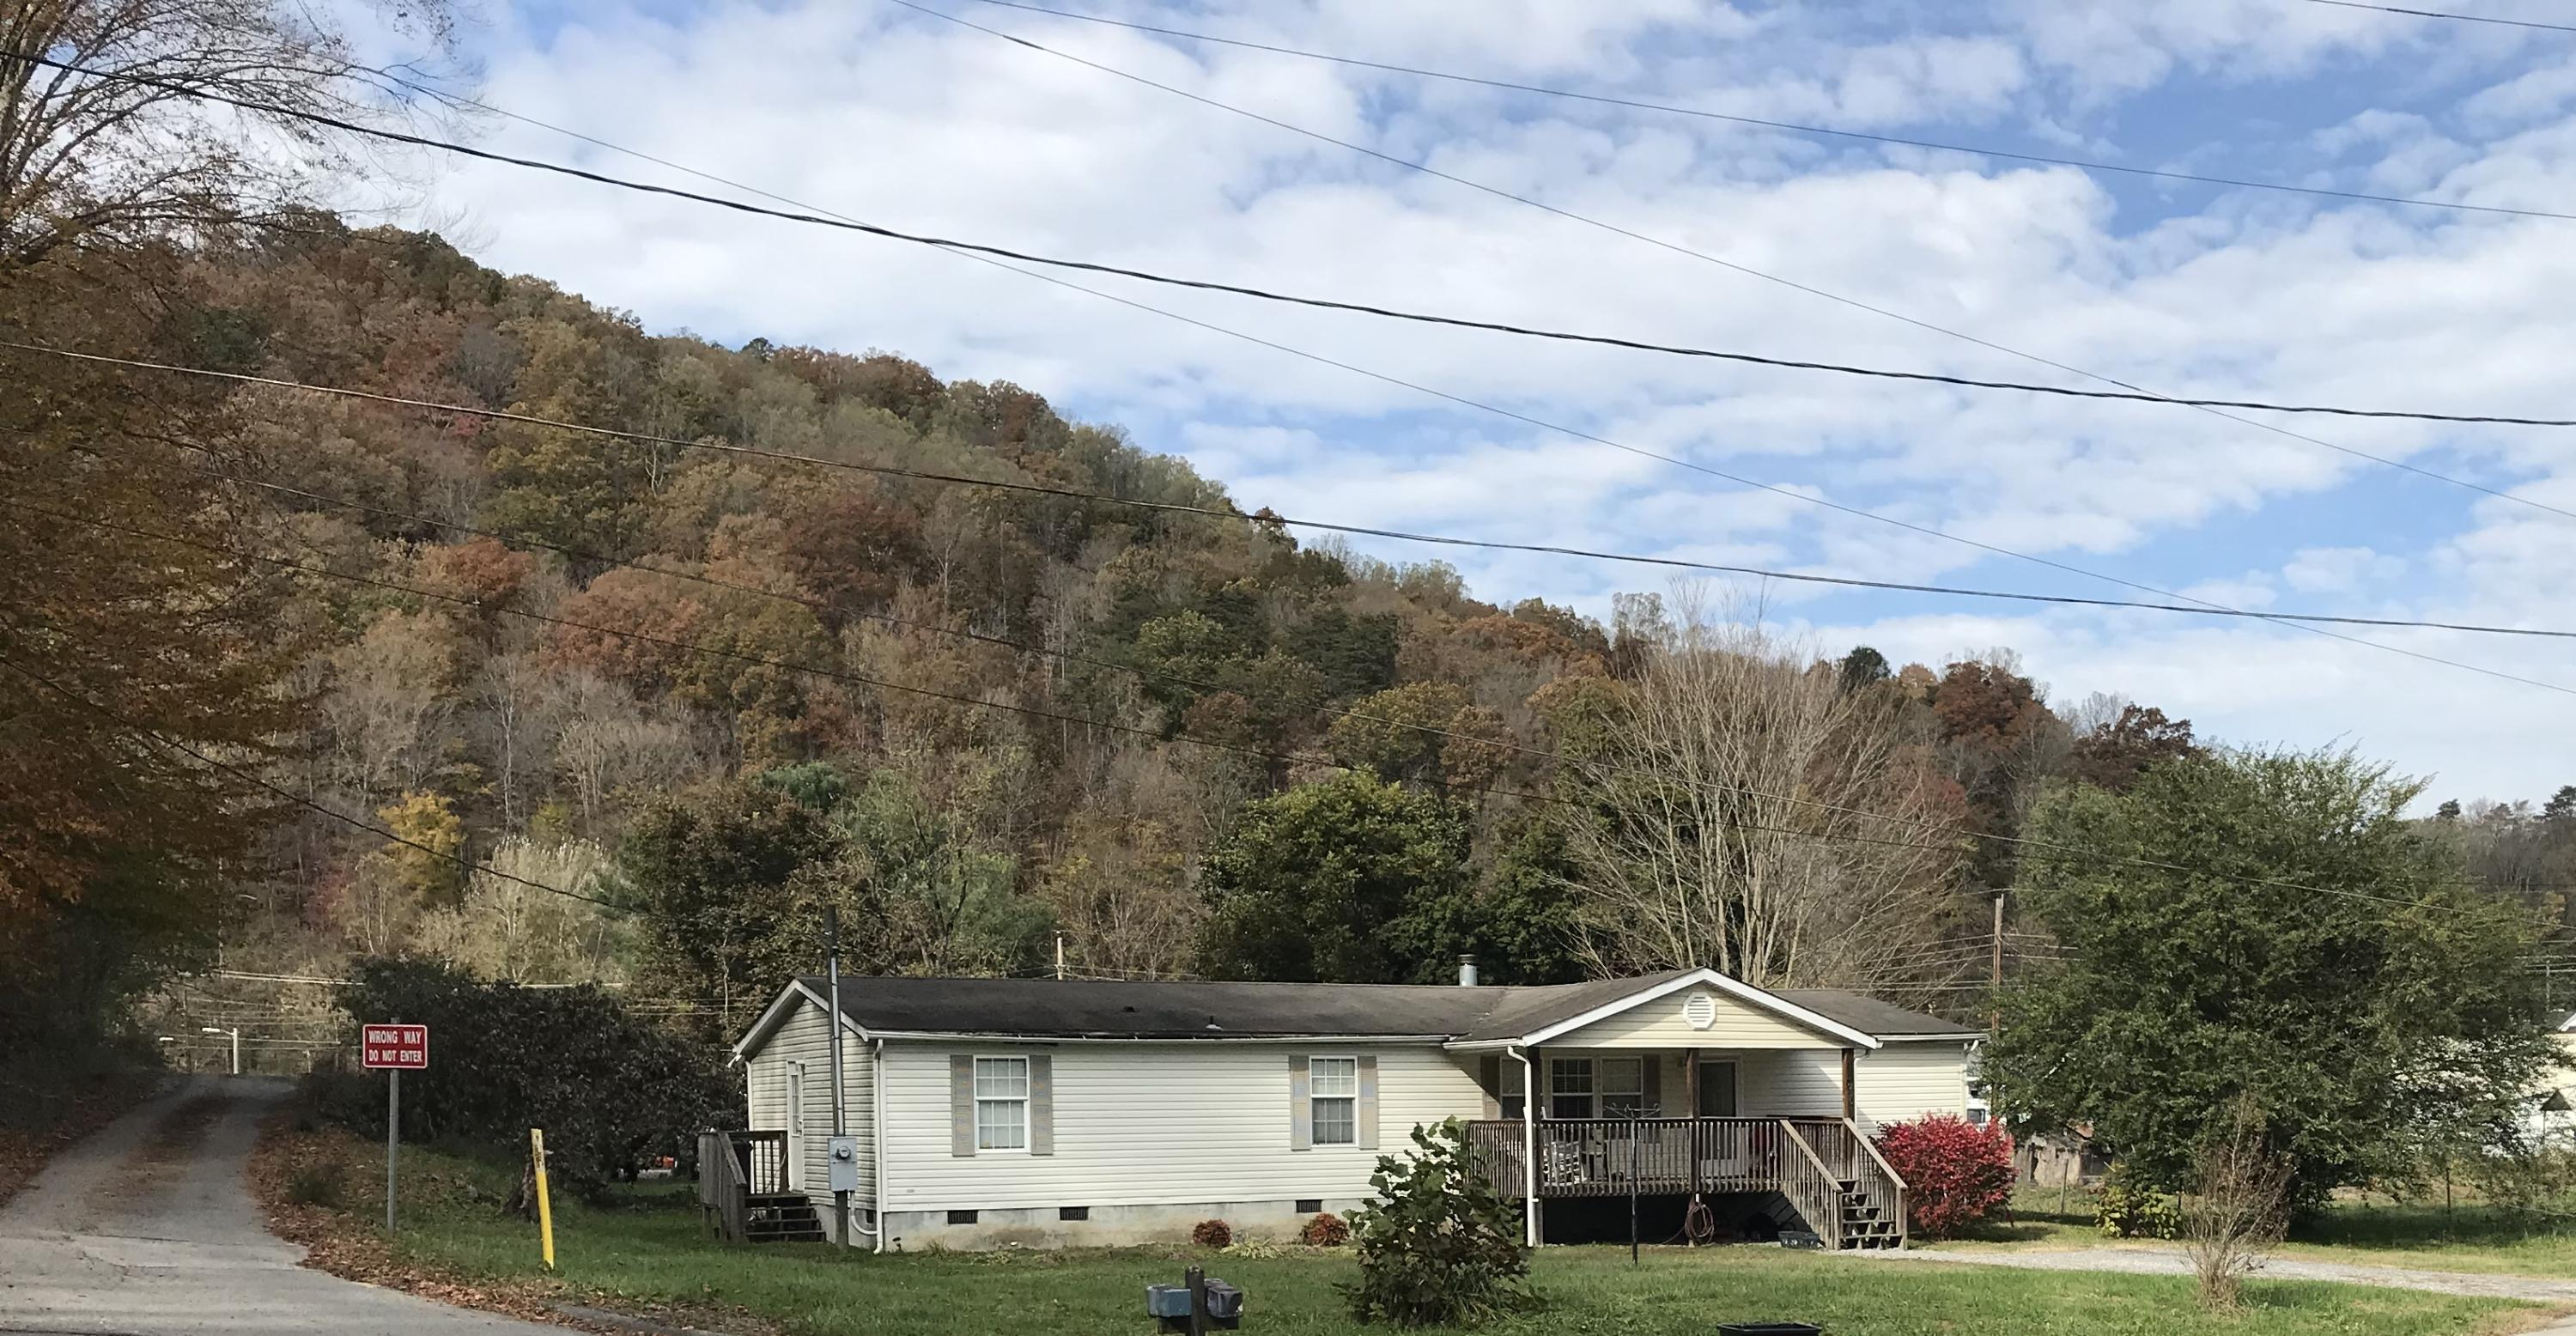 20191112004317948607000000-o Rocky Top anderson county homes for sale